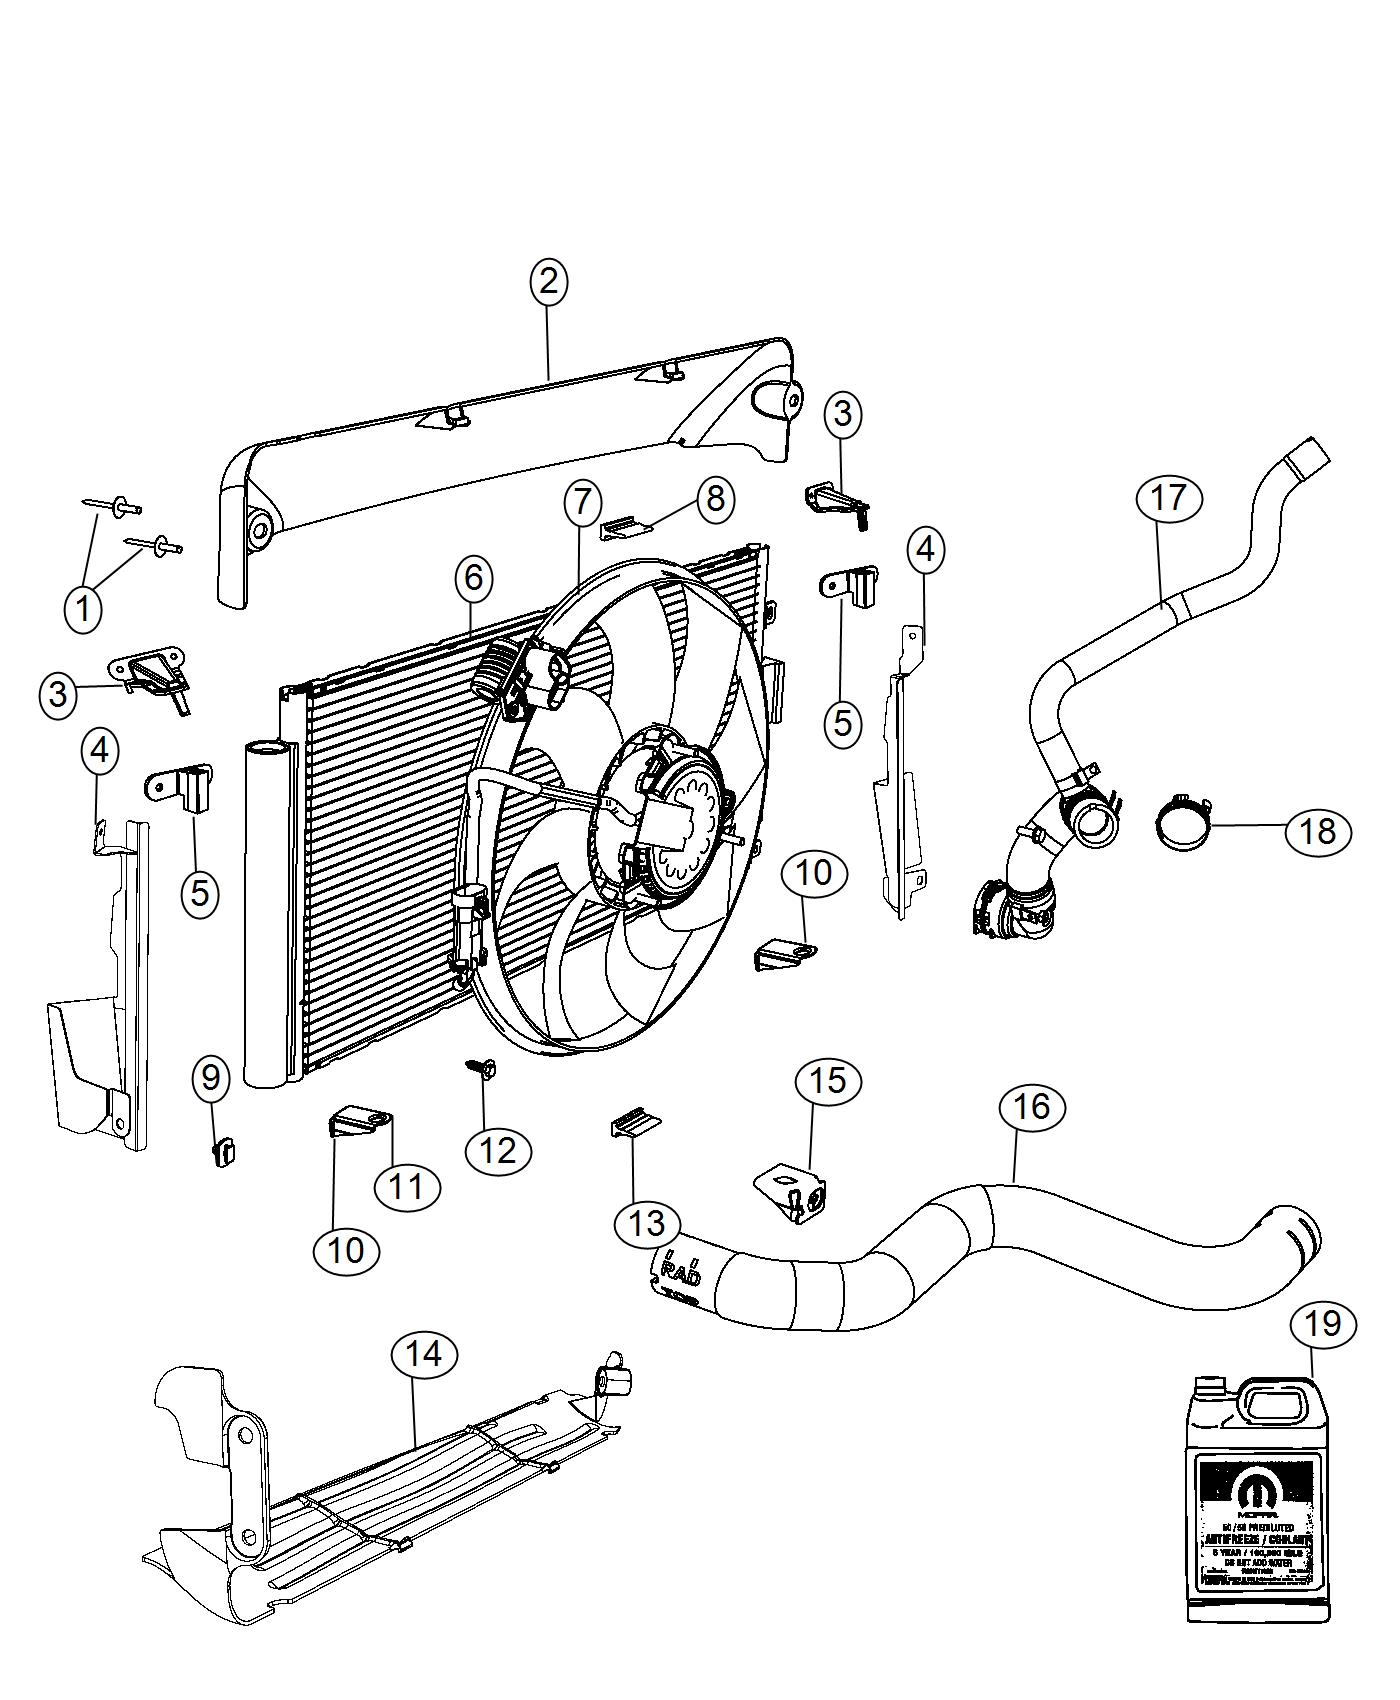 2013 Fiat 500 Hose  Radiator Outlet  Cooling  Maintenance